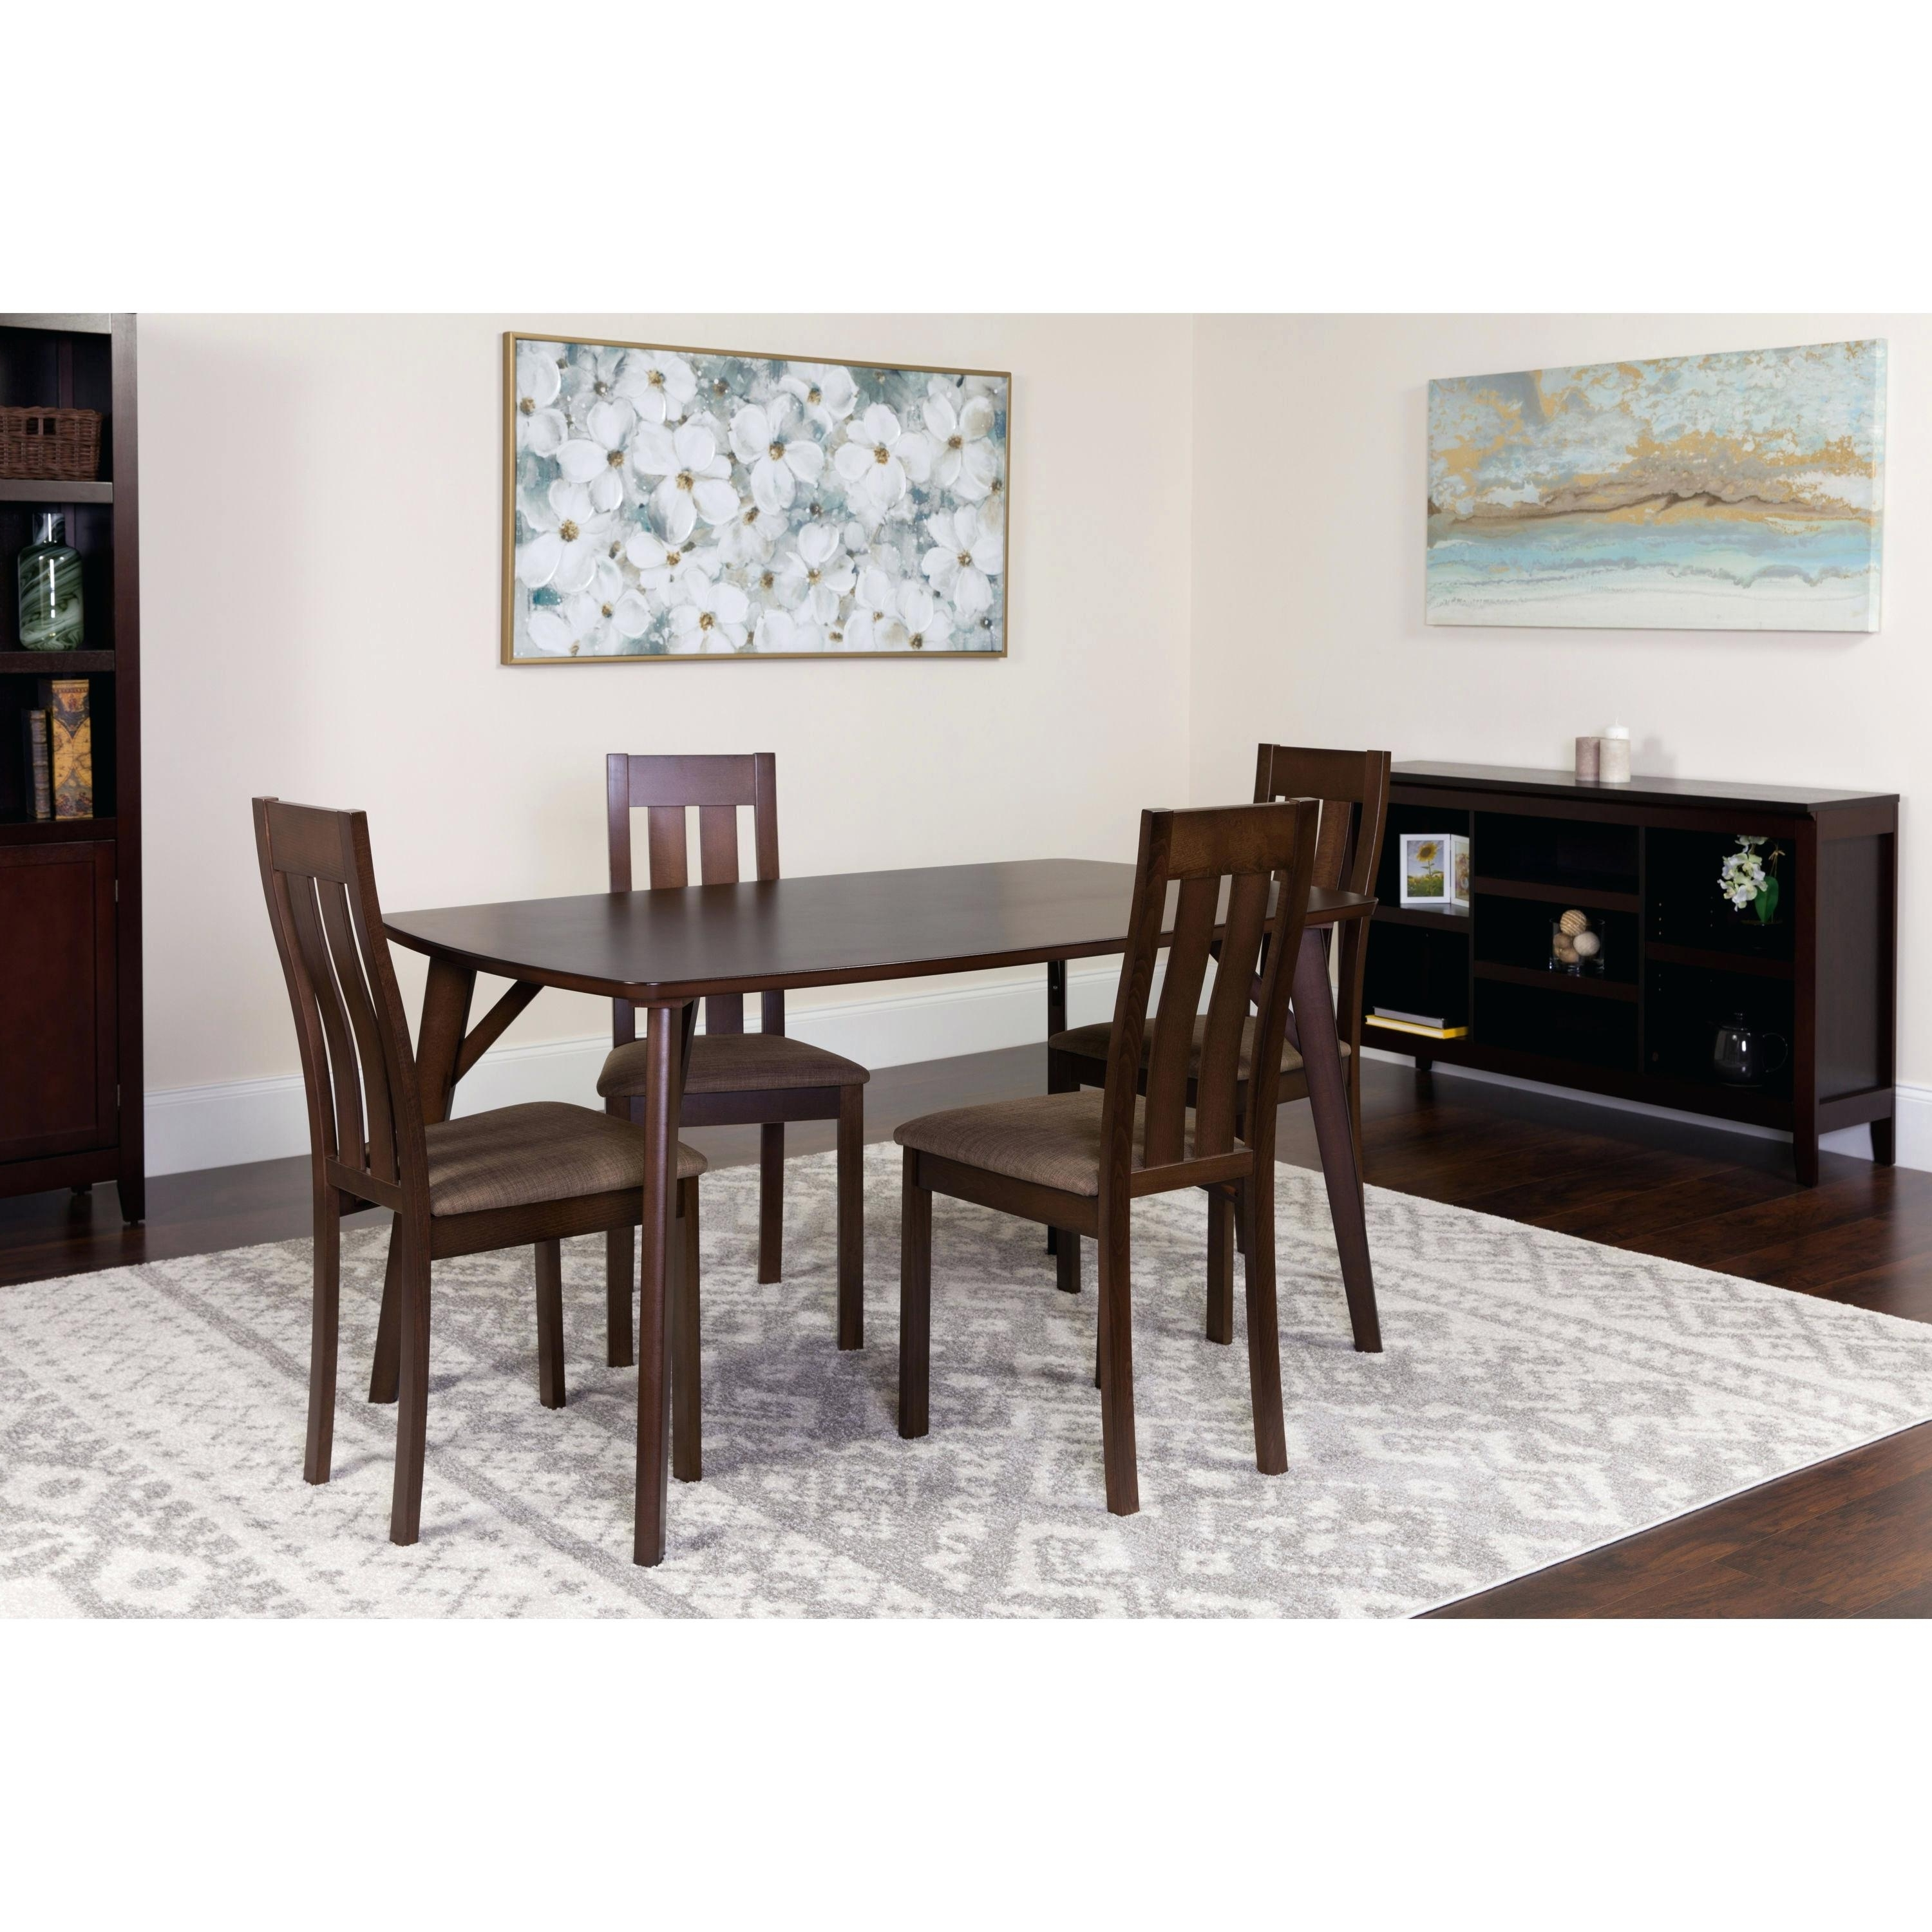 Caira Black Round Dining Tables Pertaining To Best And Newest 5 Piece Espresso Dining Set Our 5 Piece Espresso Wood Dining Table (View 5 of 25)